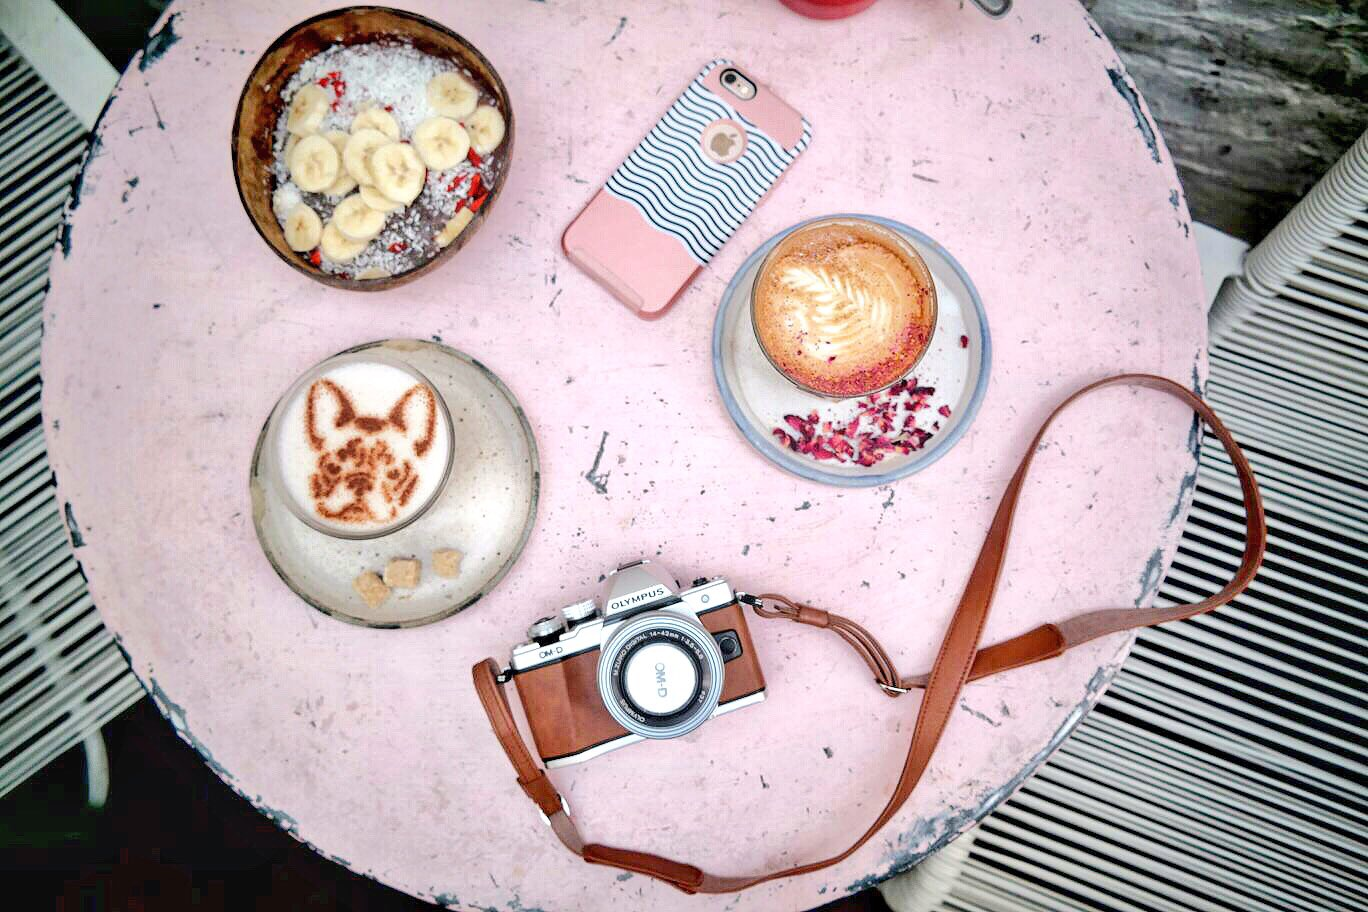 London's Most Instagrammable Cafe - Farm Girl